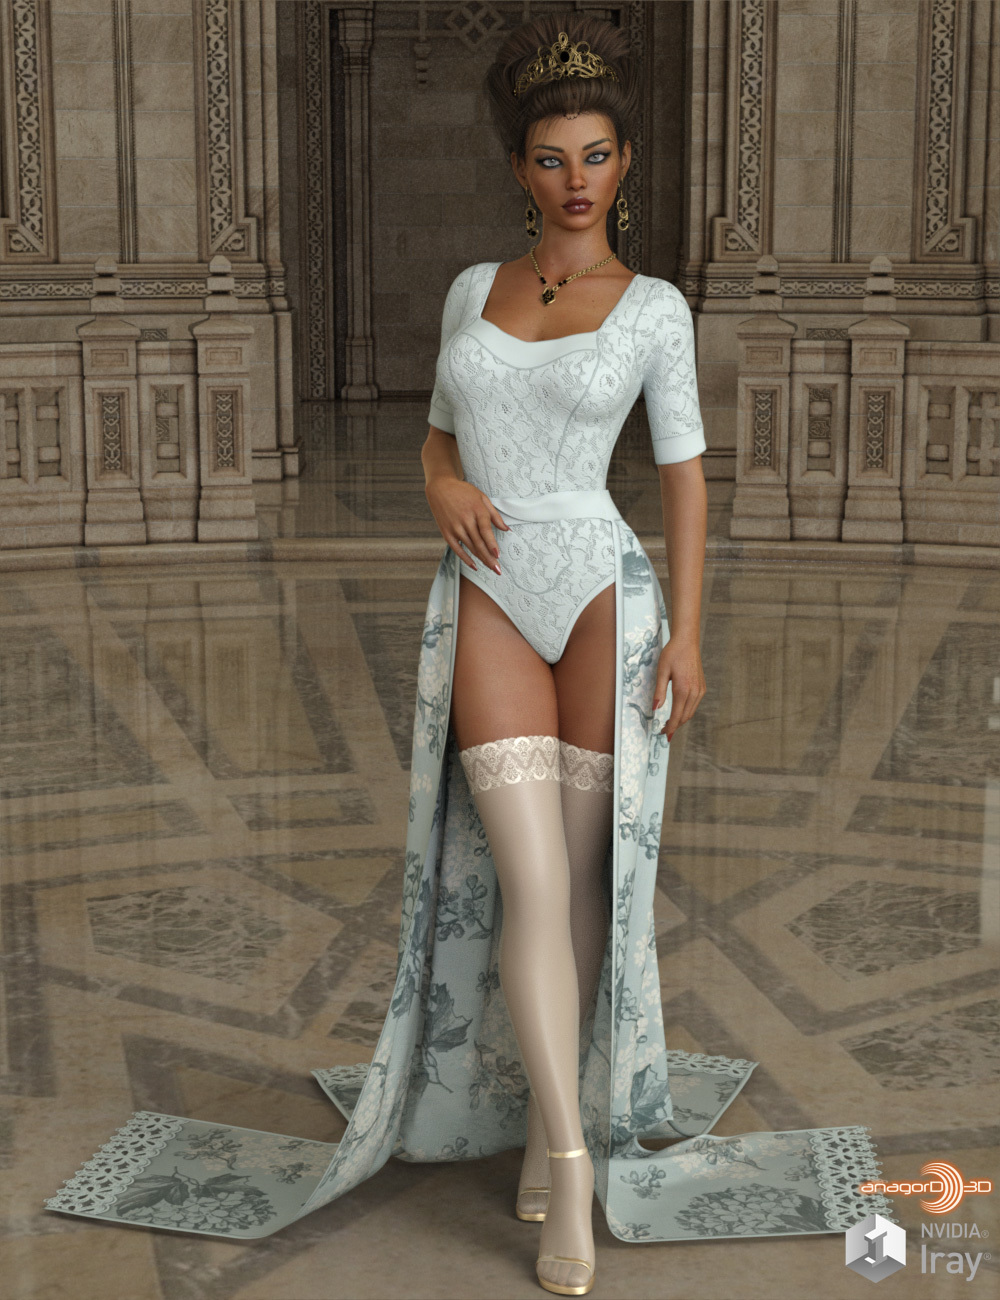 VERSUS - dforce Flowing Dream Lingerie G8F by Anagord